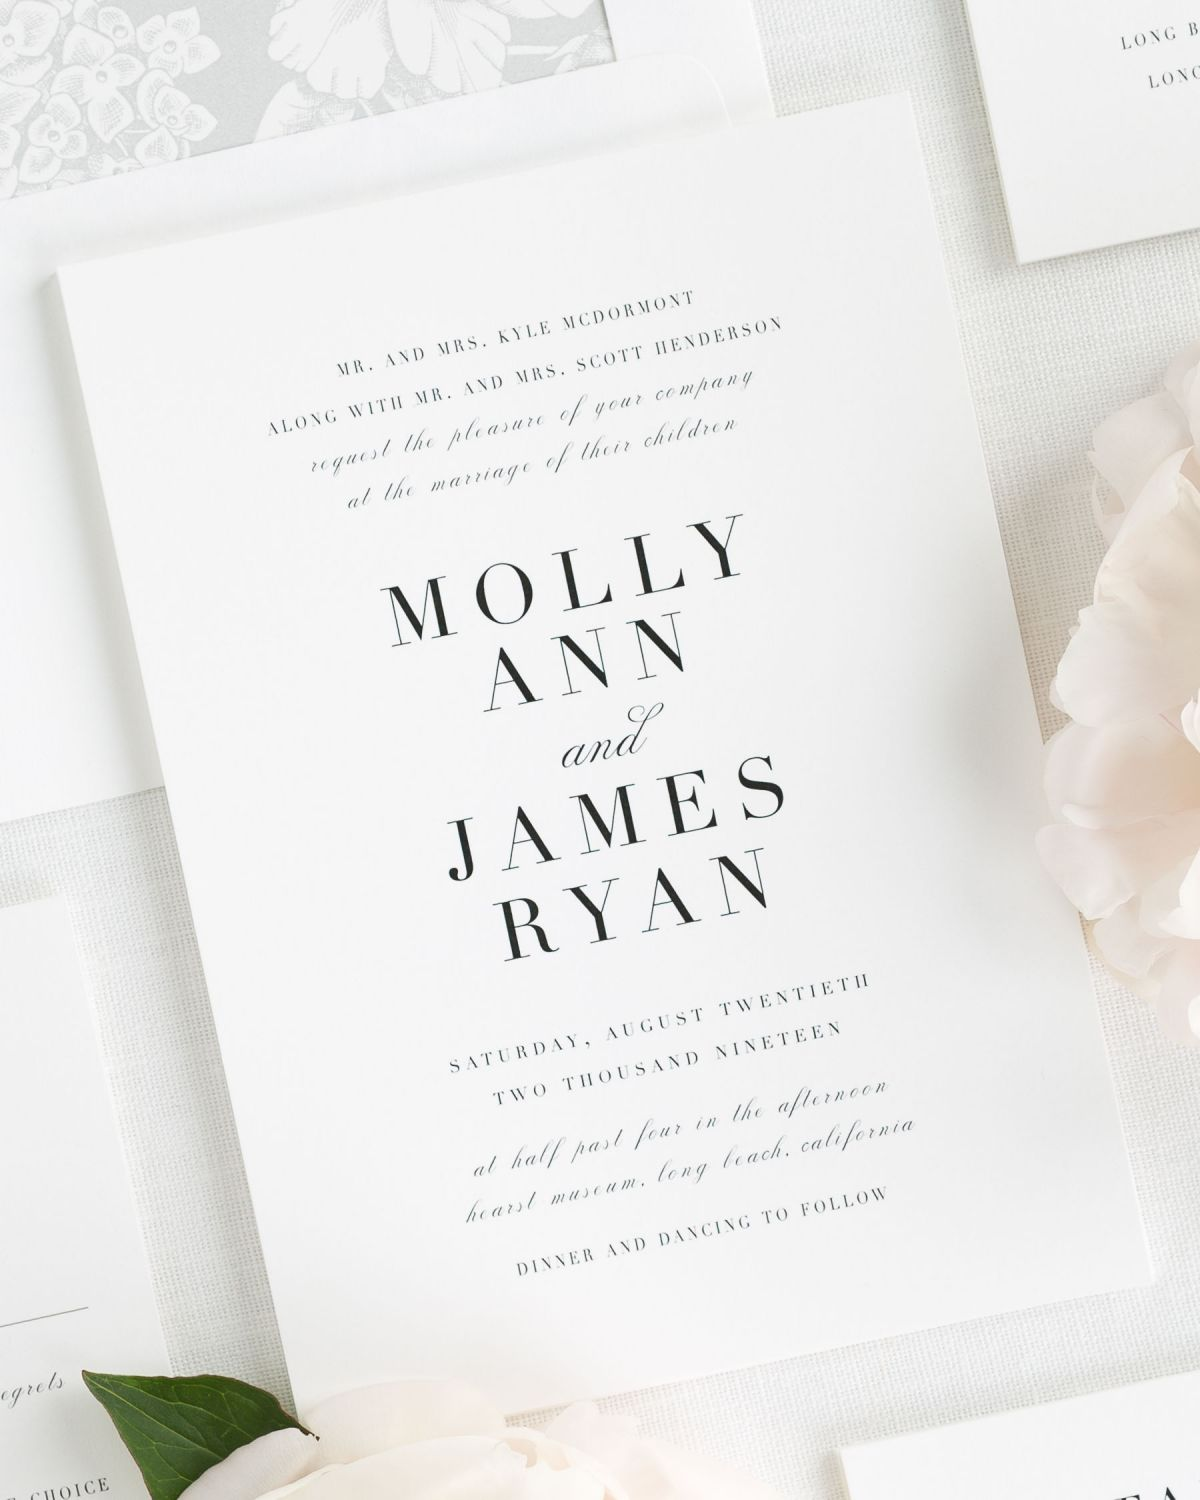 Serif Romance Wedding Invitations - Wedding Invitations by Shine